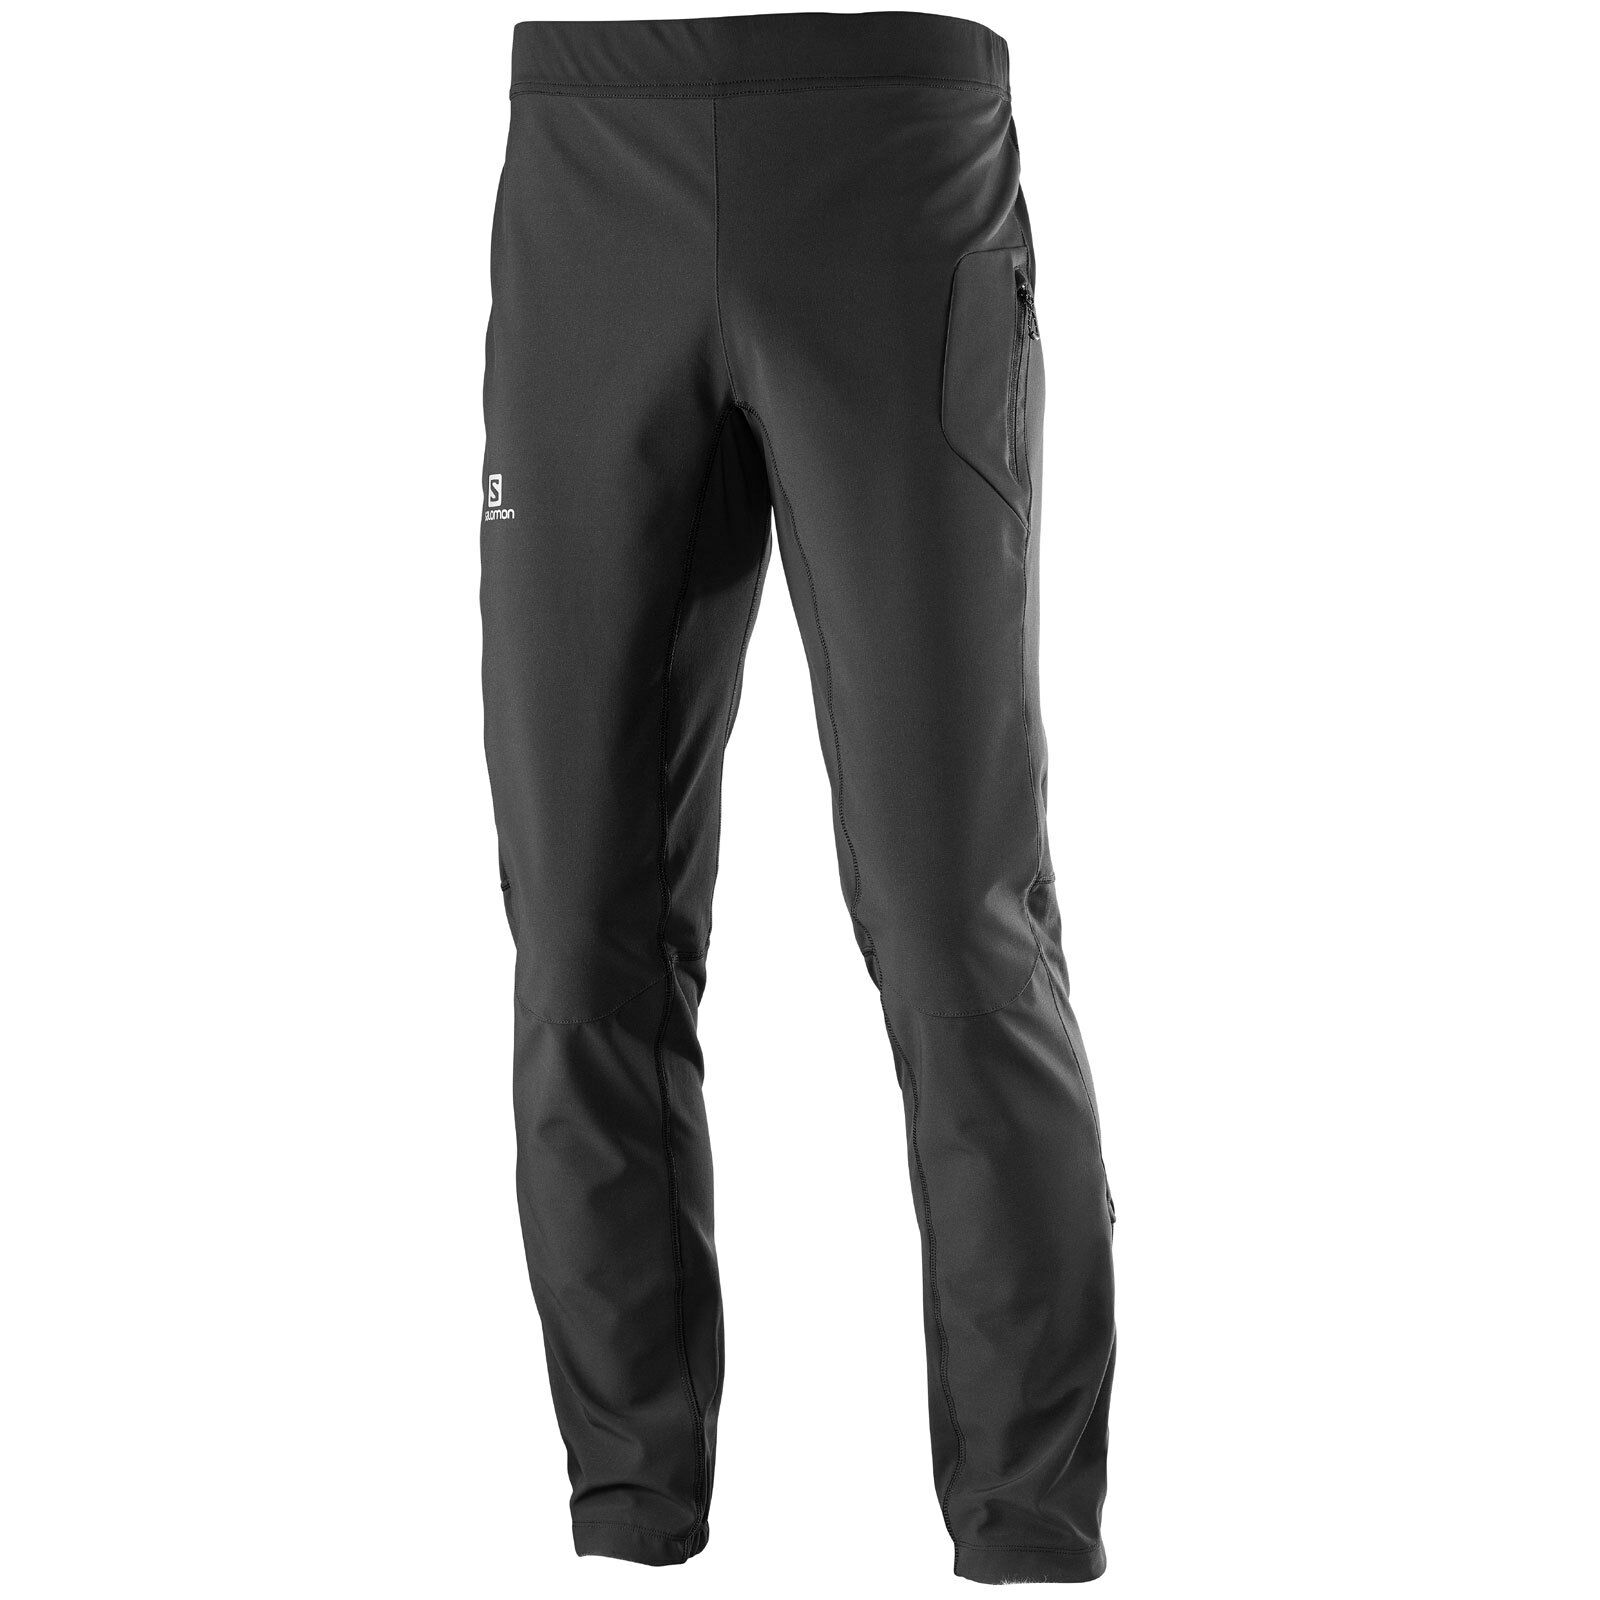 Salomon Salomon Salomon RS Warm Softshell Pant Herren-Trainingshose Laufhose Wintersport dd3ae8